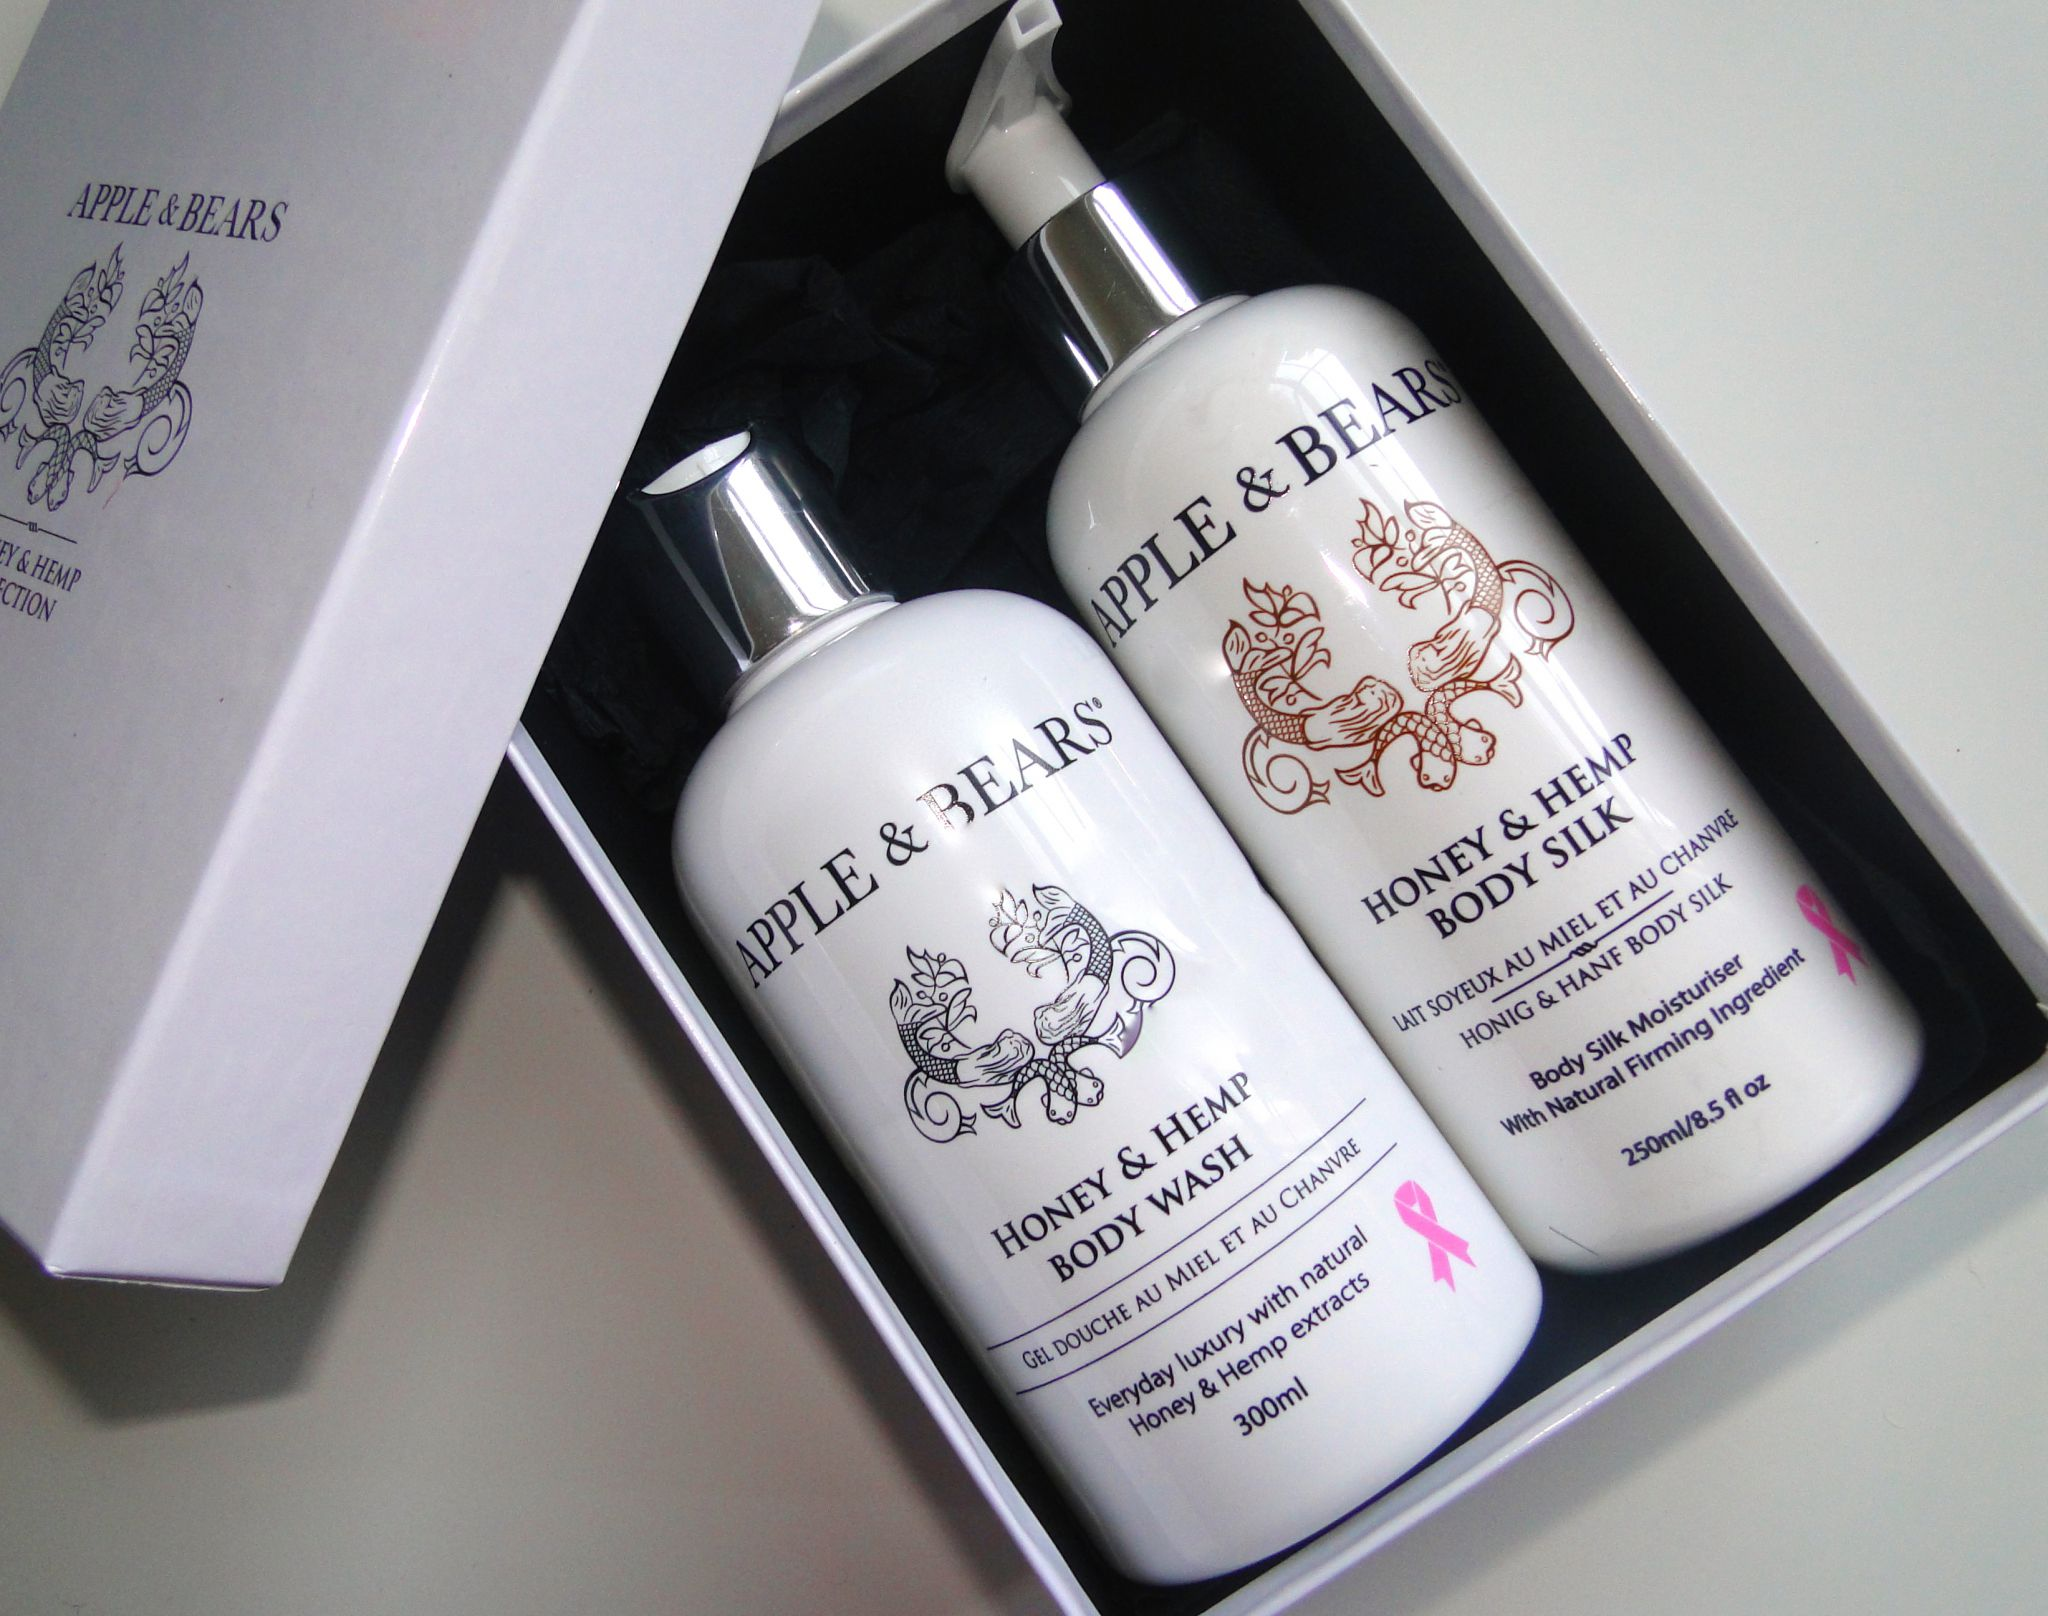 Apples and Bears Luxury Body Care Gift Set